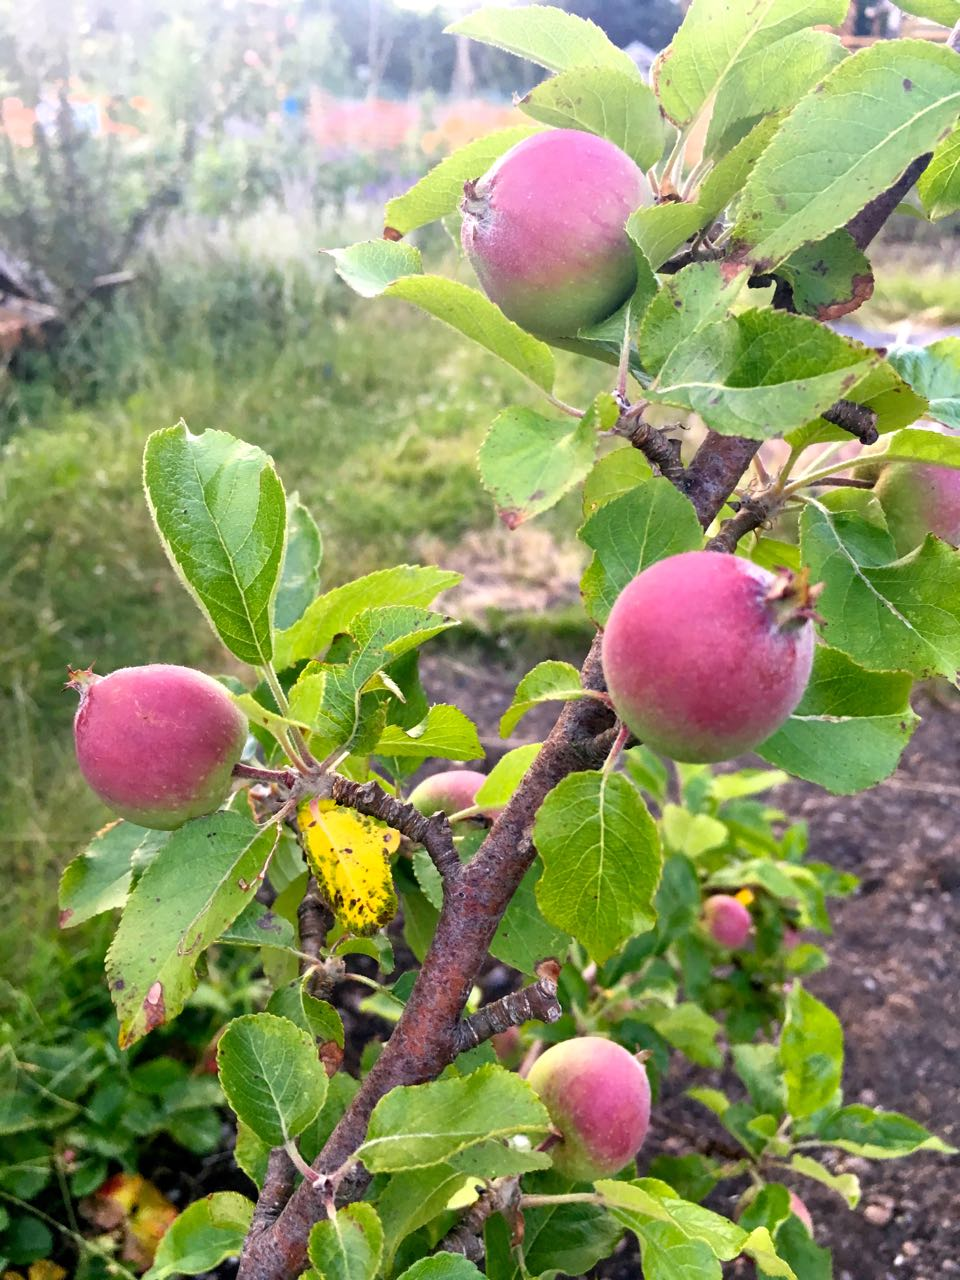 Apples - many more than last year